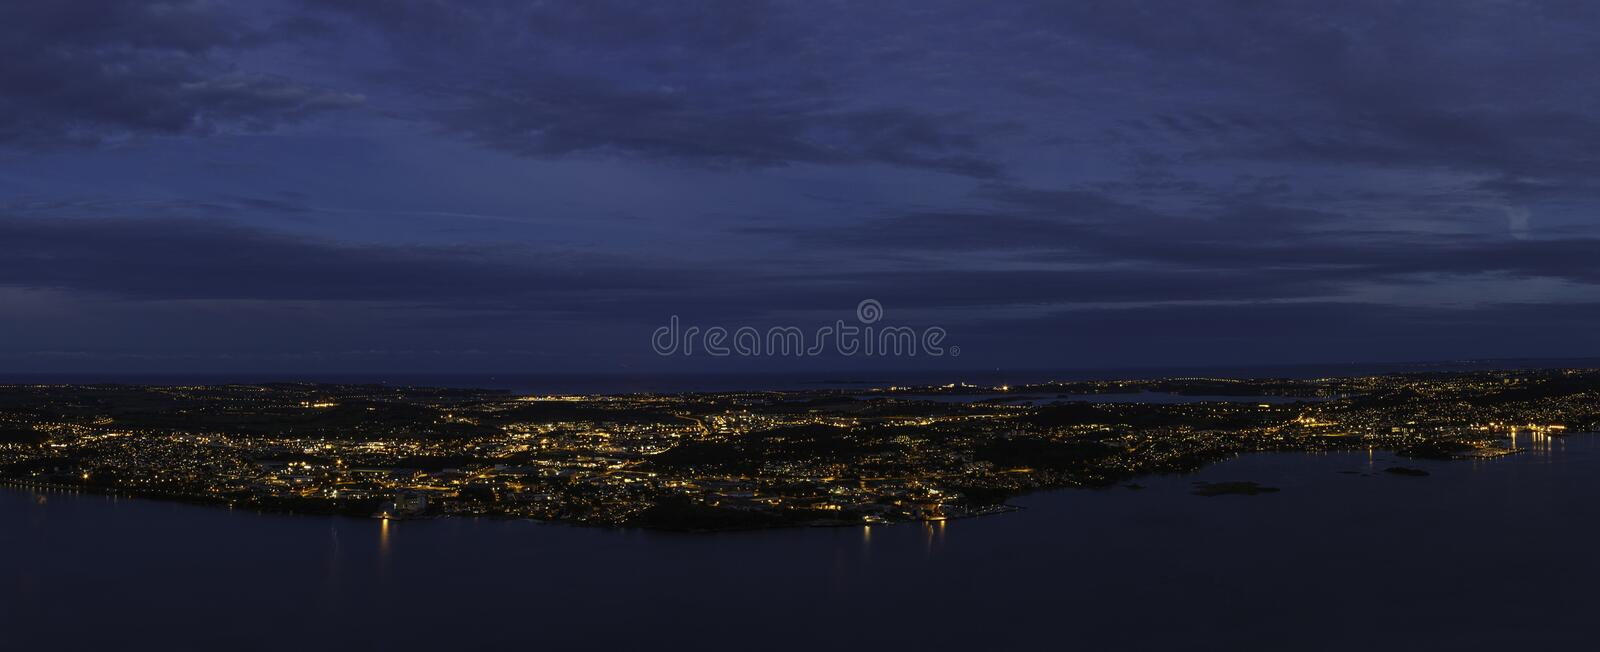 City in middle of the sea royalty free stock photos